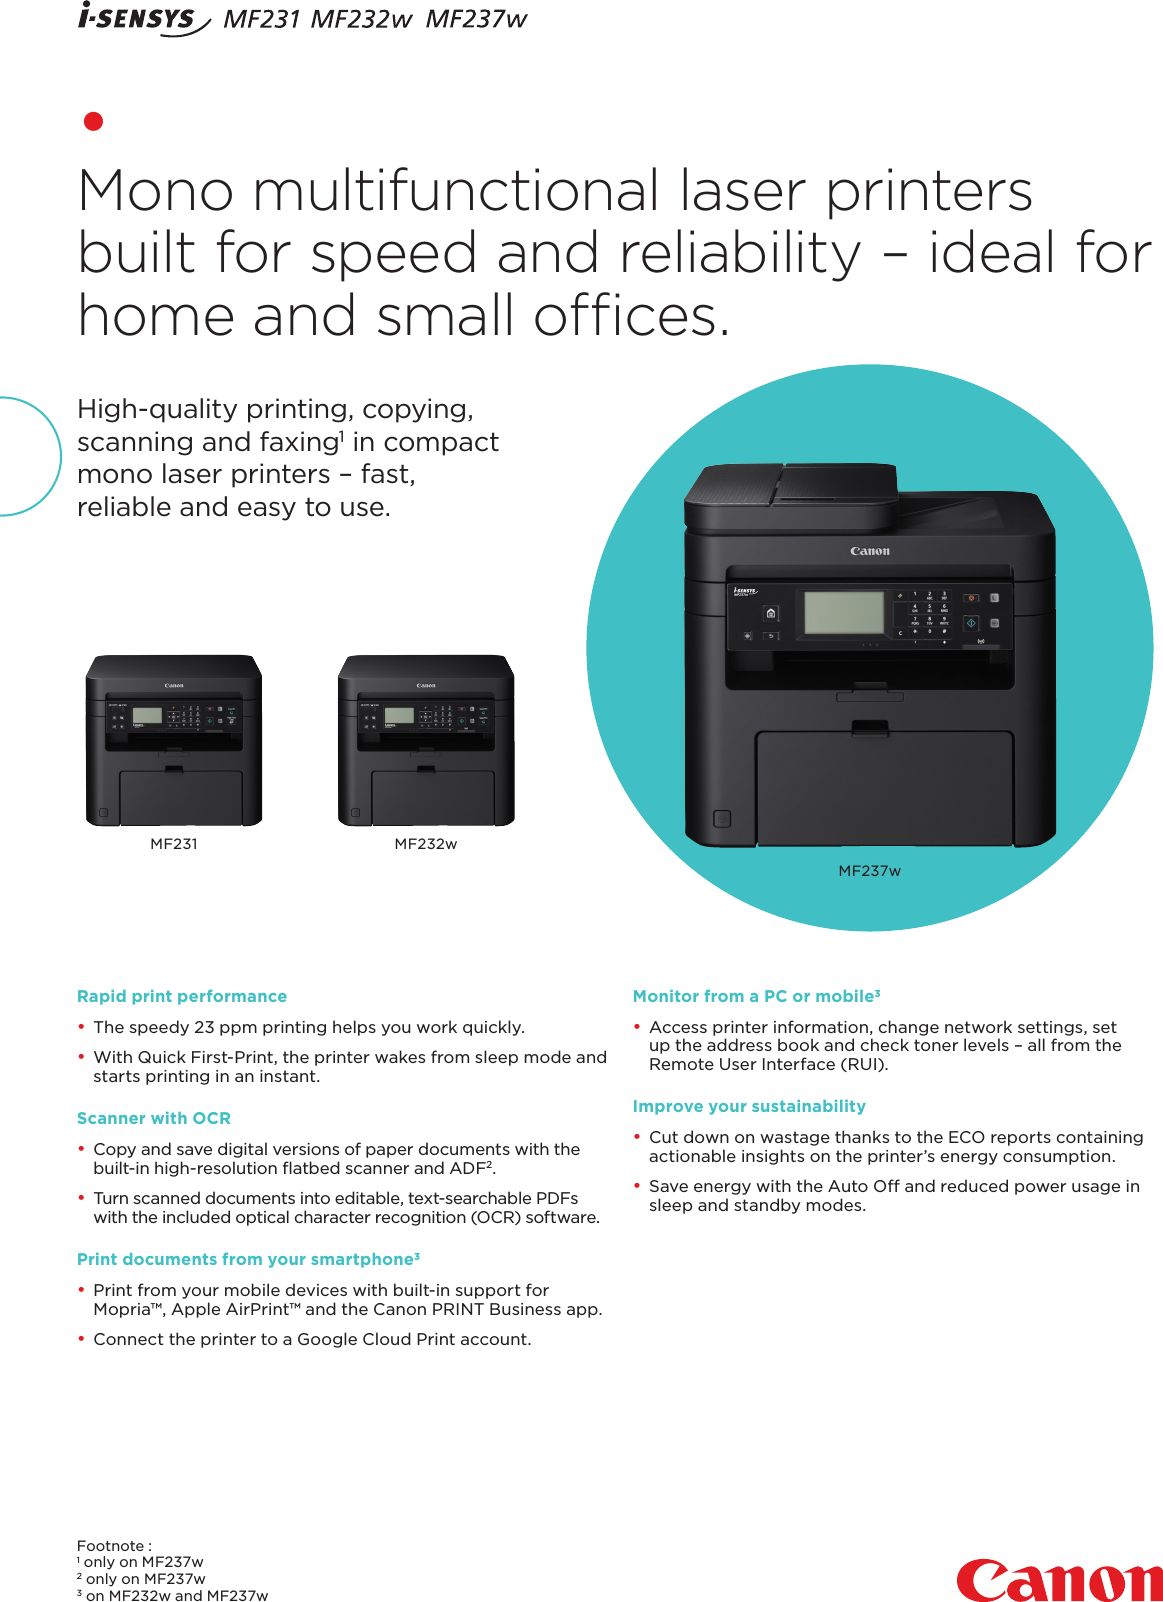 canon mf232w scan utility download